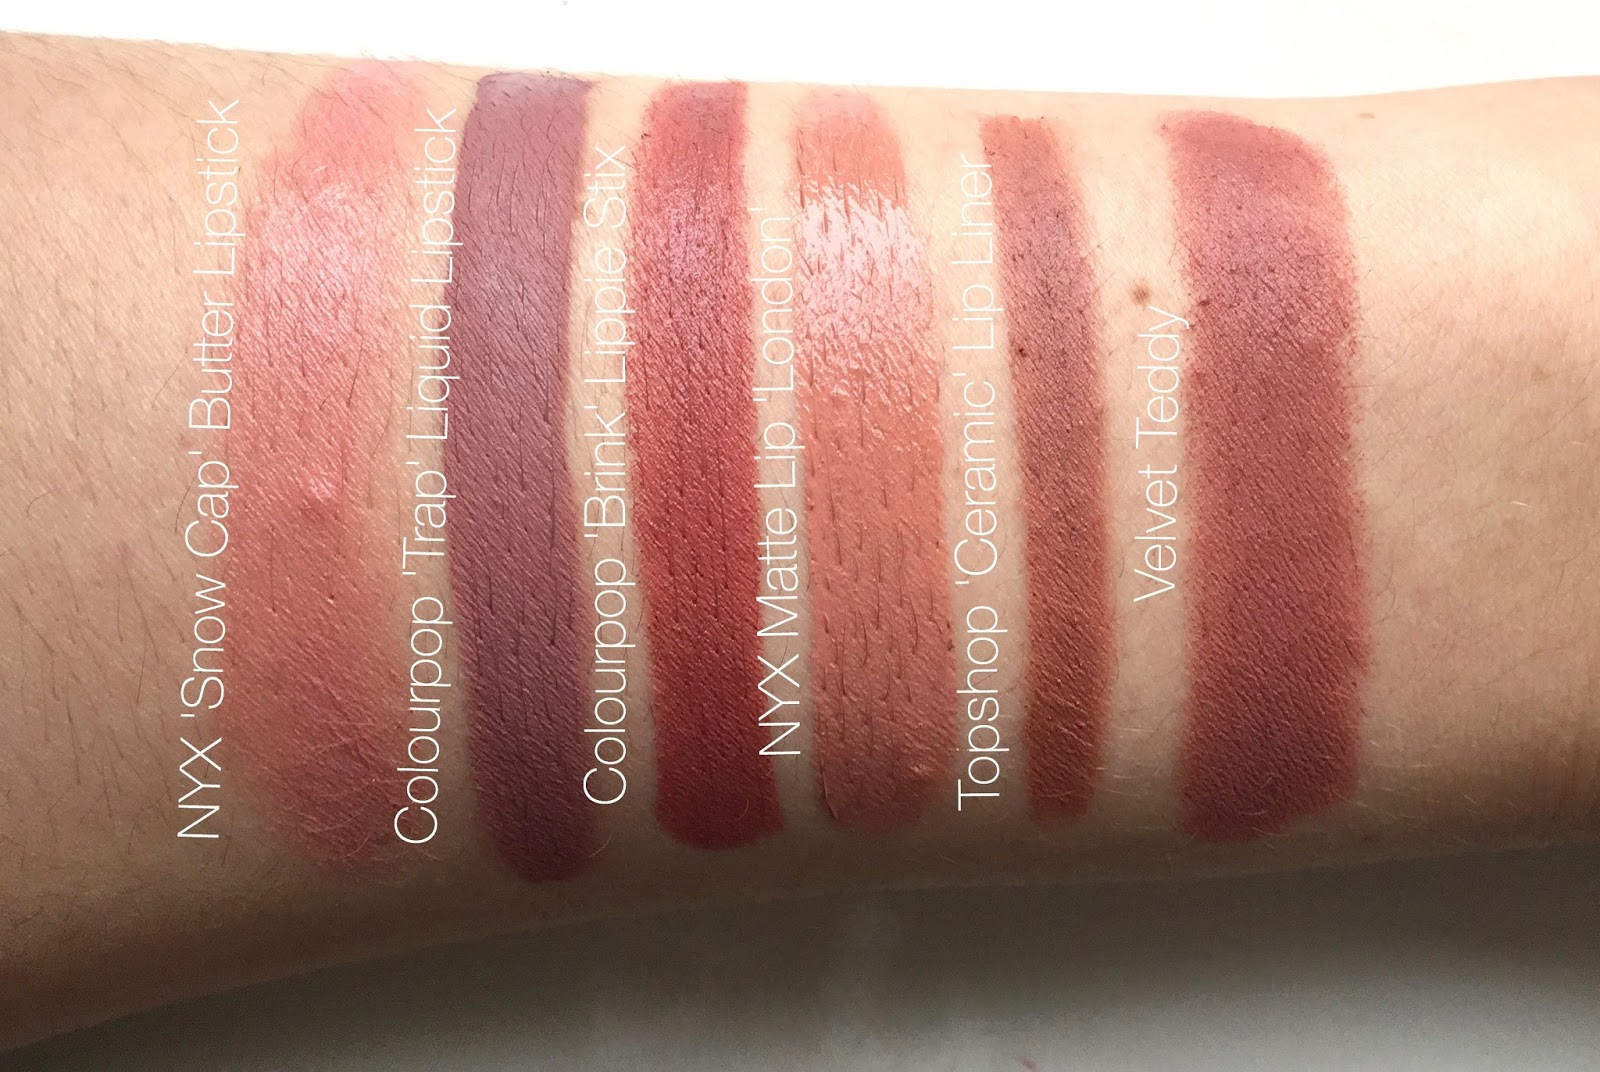 Velvet Teddy cheap, affordable, dupes, mac velvet teddy, nyx lipstick vs velvet teddy, colourpop trap vs kylie lip kit, colourpop trap vs velvet teddy, nyx matte lip london vs velvet teddy, colourpop brink vs velvet teddy,  topshop ceramic lip liner vs velvet teddy